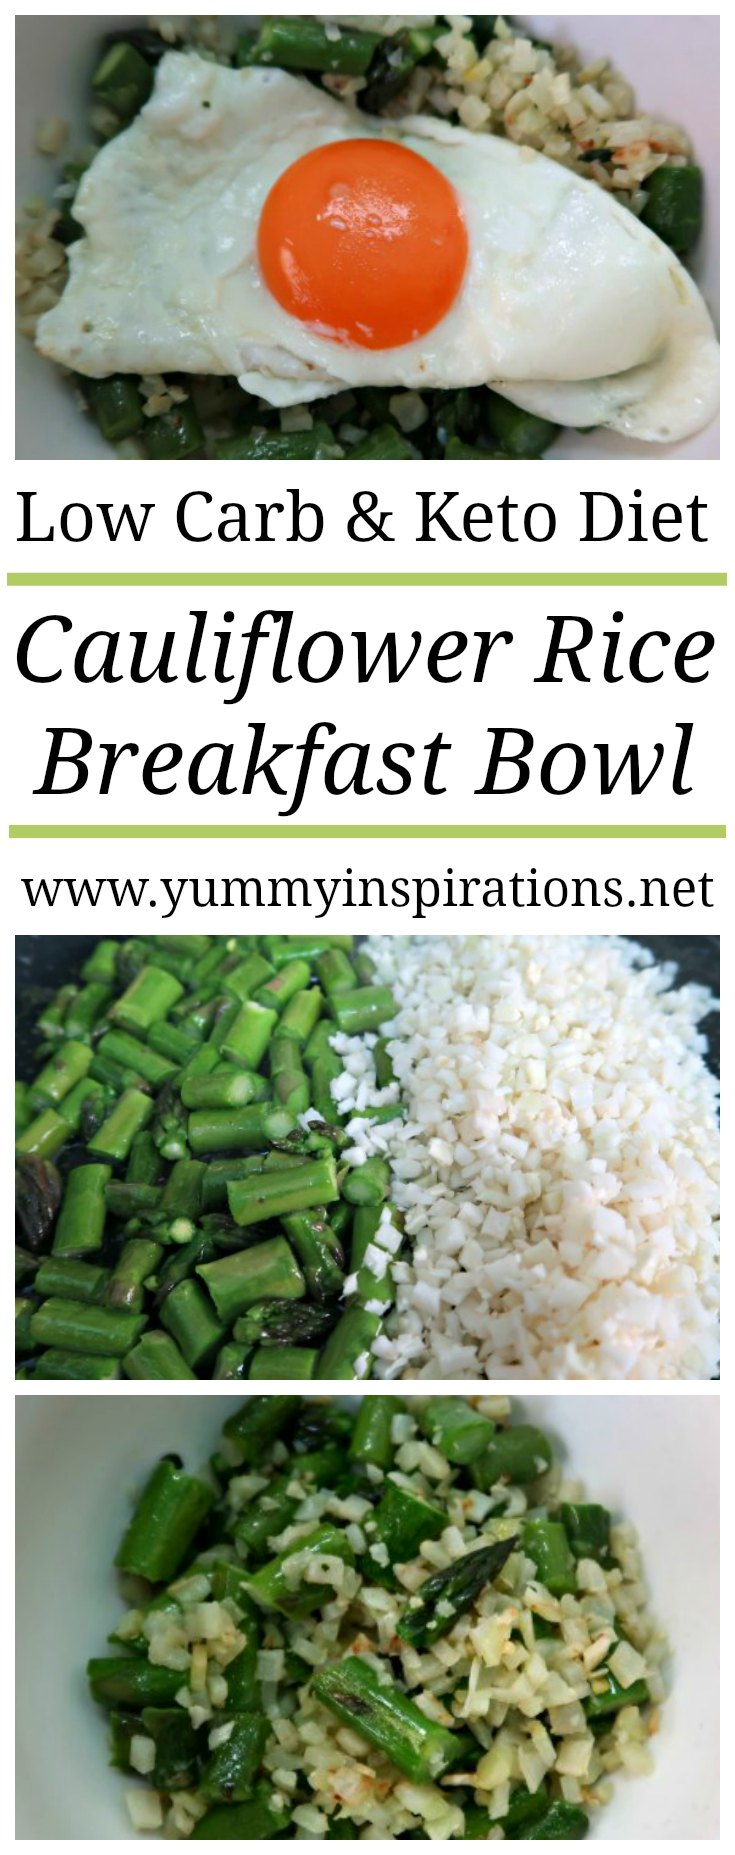 Keto Cauliflower Rice Breakfast Bowl Recipe - Easy Low Carb Cauliflower Recipes - How to make Ketogenic Cauli Rice for a simple breakfast idea.